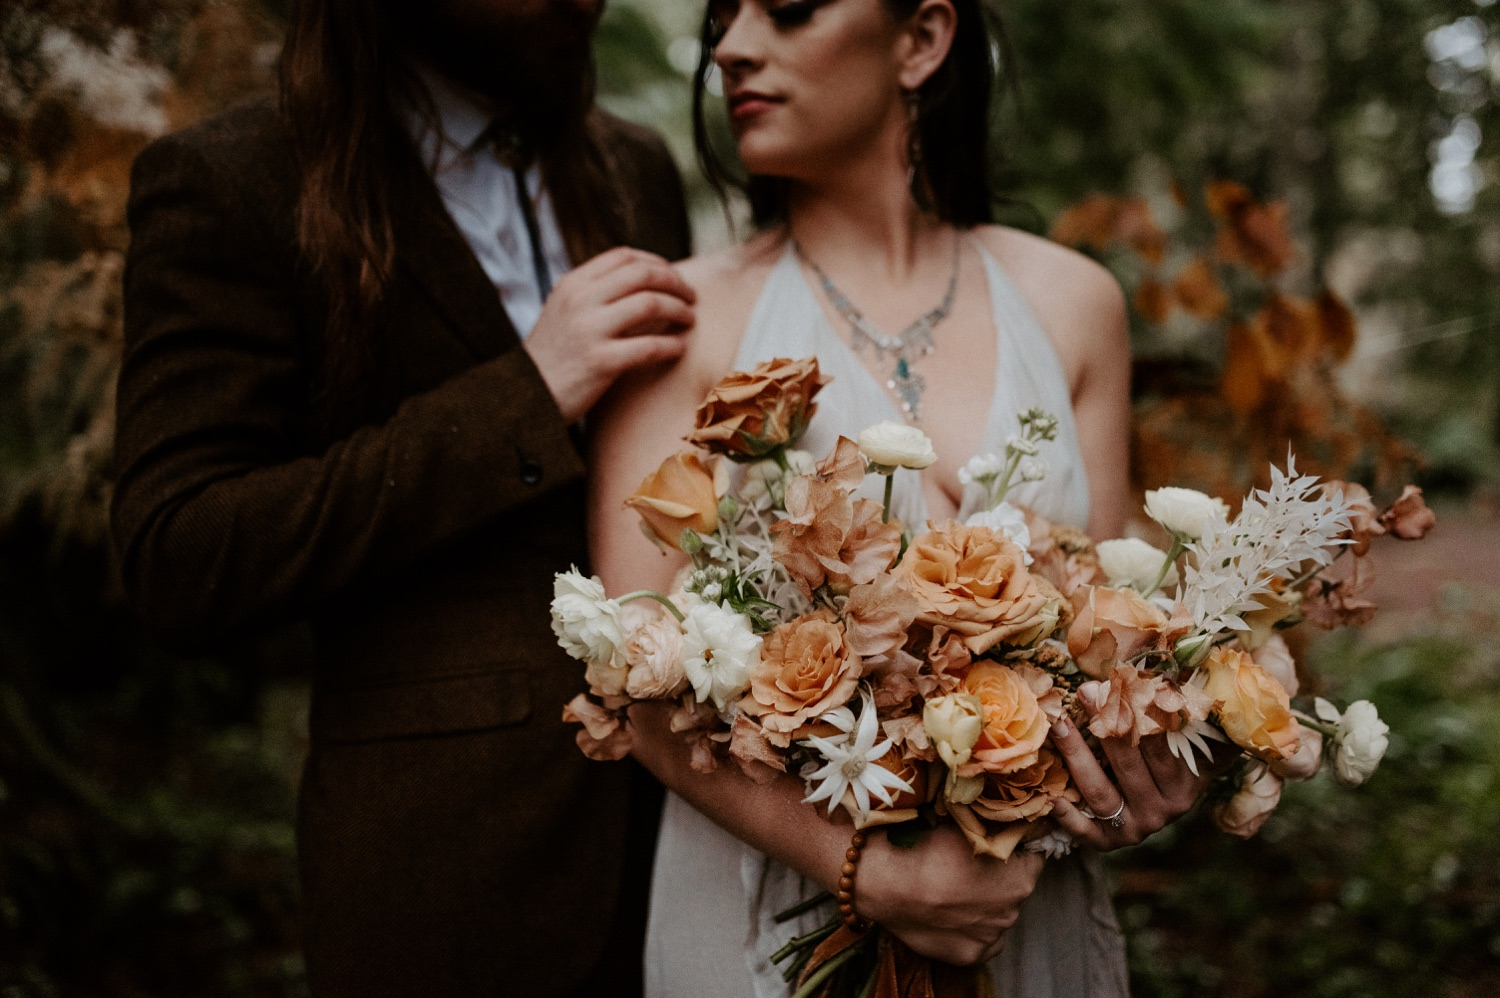 The Woodlands House Sandy Oregon Elopement Portland Elopement Photographer PNW Adventurous Elopement Anais Possamai Photography 025